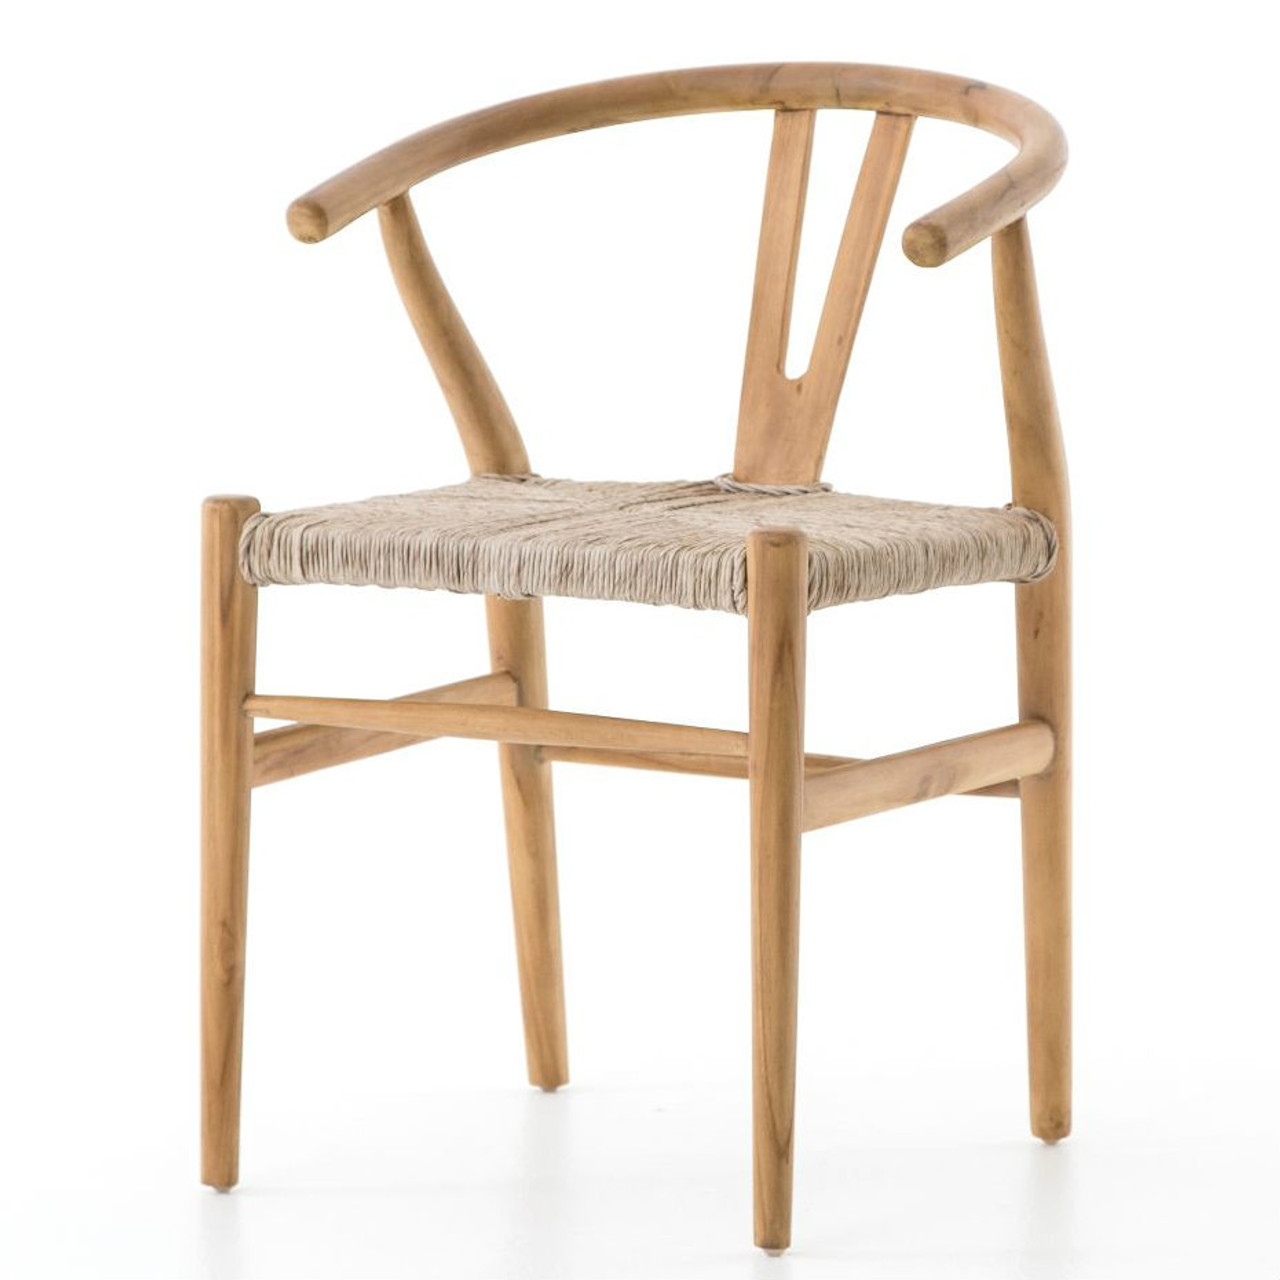 Muestra Natural Teak Wood Woven Wicker Dining Chair | Zin Home   Fourhands